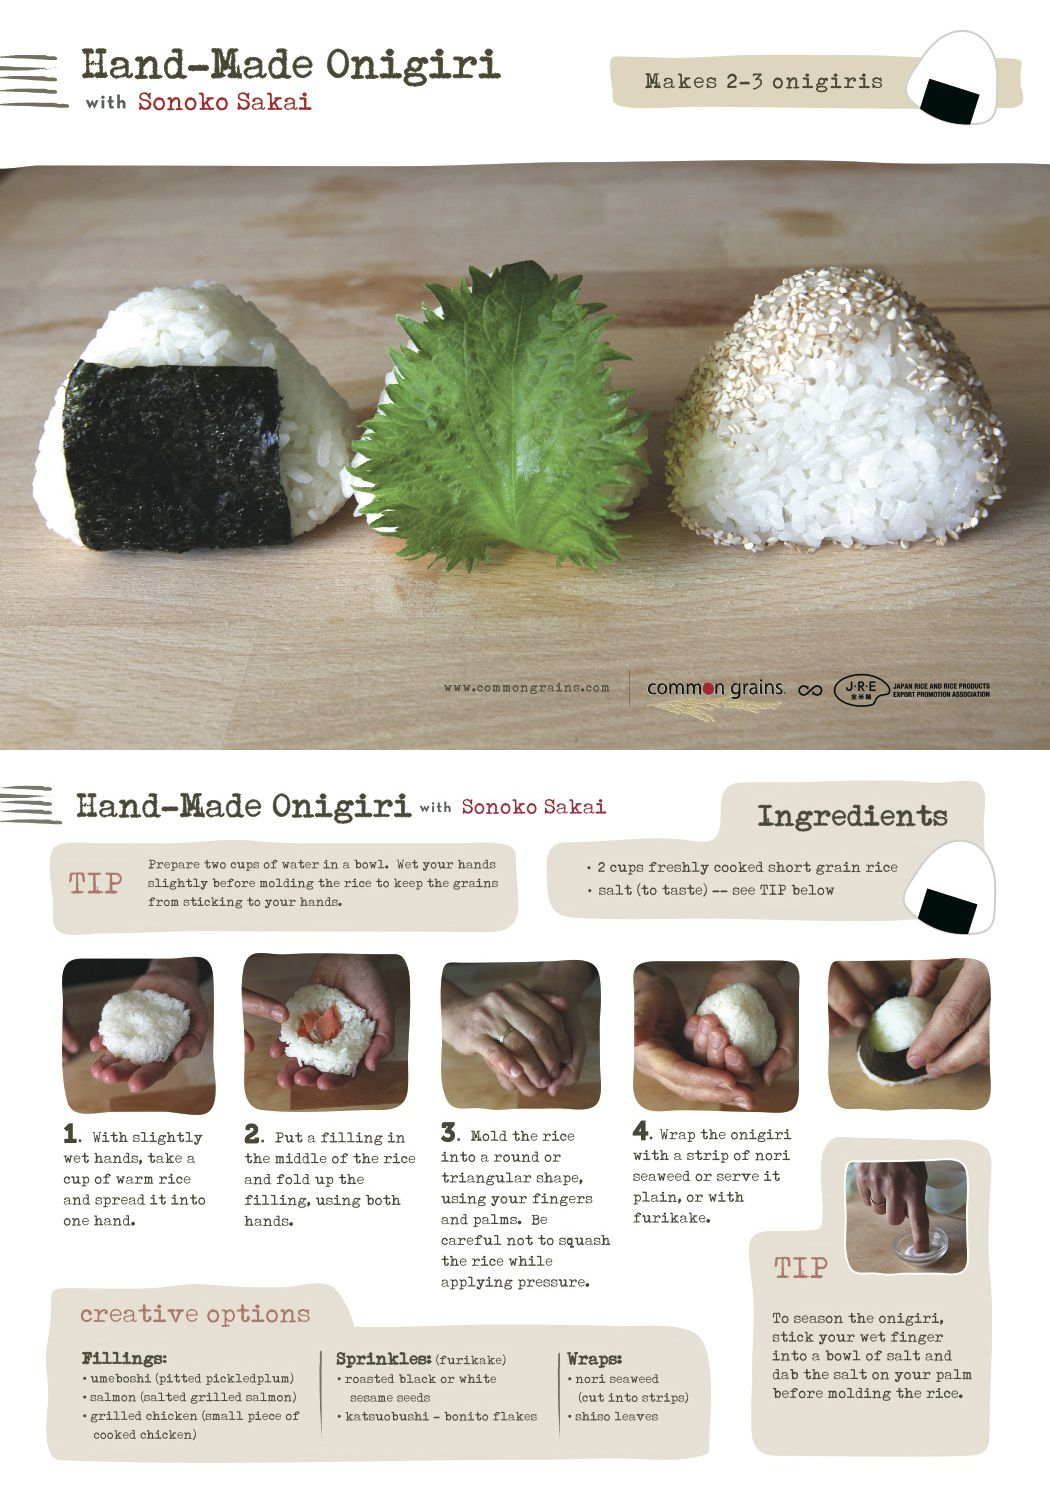 At A Glance For Onigiri  How To Make A Japanese Rice Ball. Pinterest Christmas Decorations With Mason Jars. Christmas Decorations Names List. Christmas Decorations Clearance Online. Christmas Decorations Wholesale London. Homemade Christmas Decorations Holly. Make Cool Christmas Decorations Out Paper. Unusual Christmas Cake Decorations. How To Make Christmas Decorations Out Of Paper Youtube